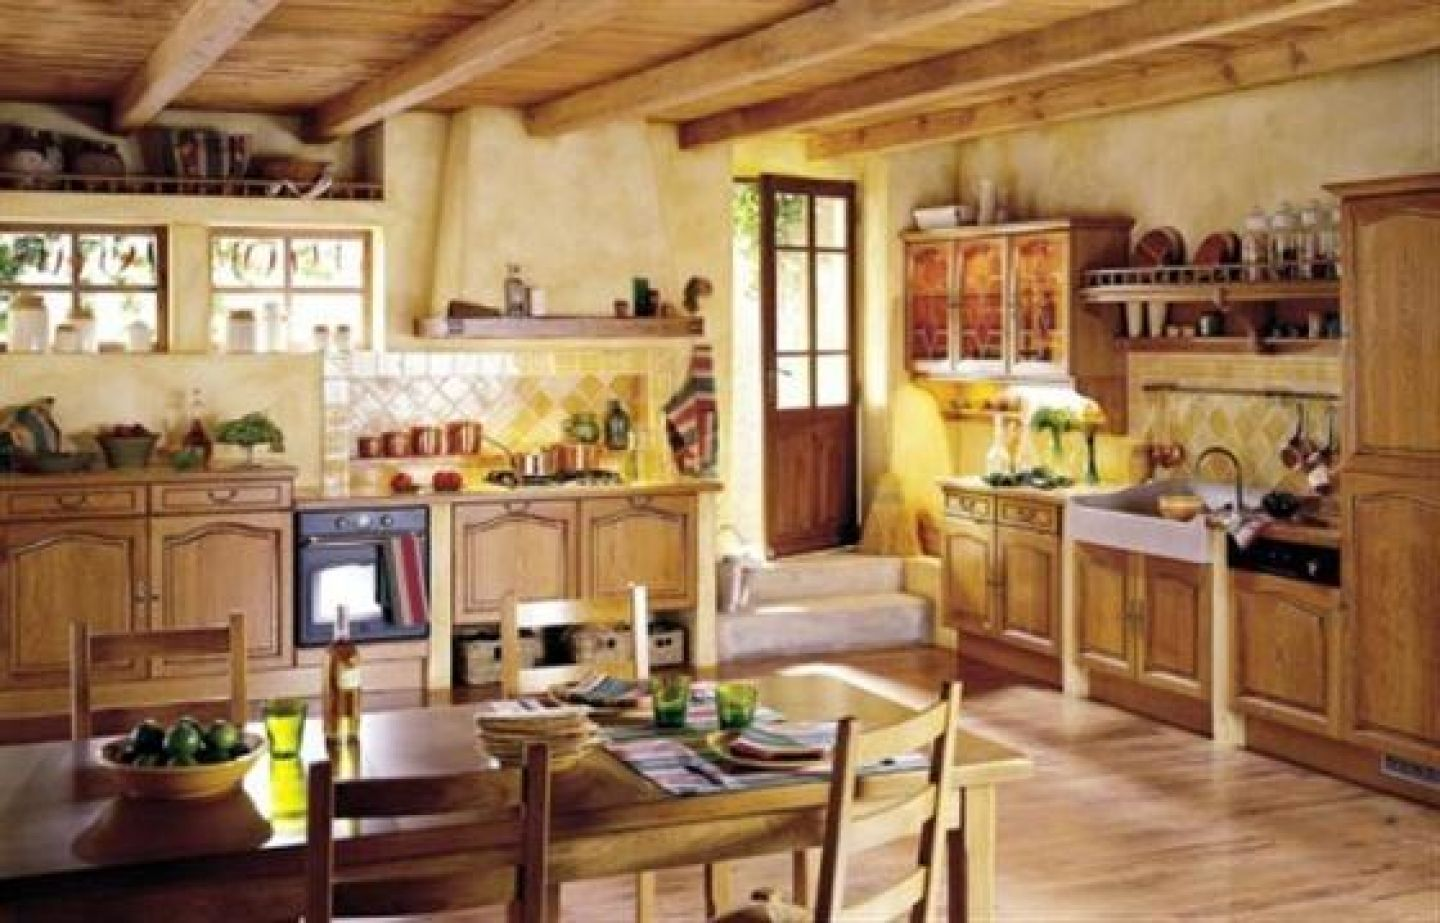 Attractive French Country Kitchen Decor | French Country Style Kitchen Design